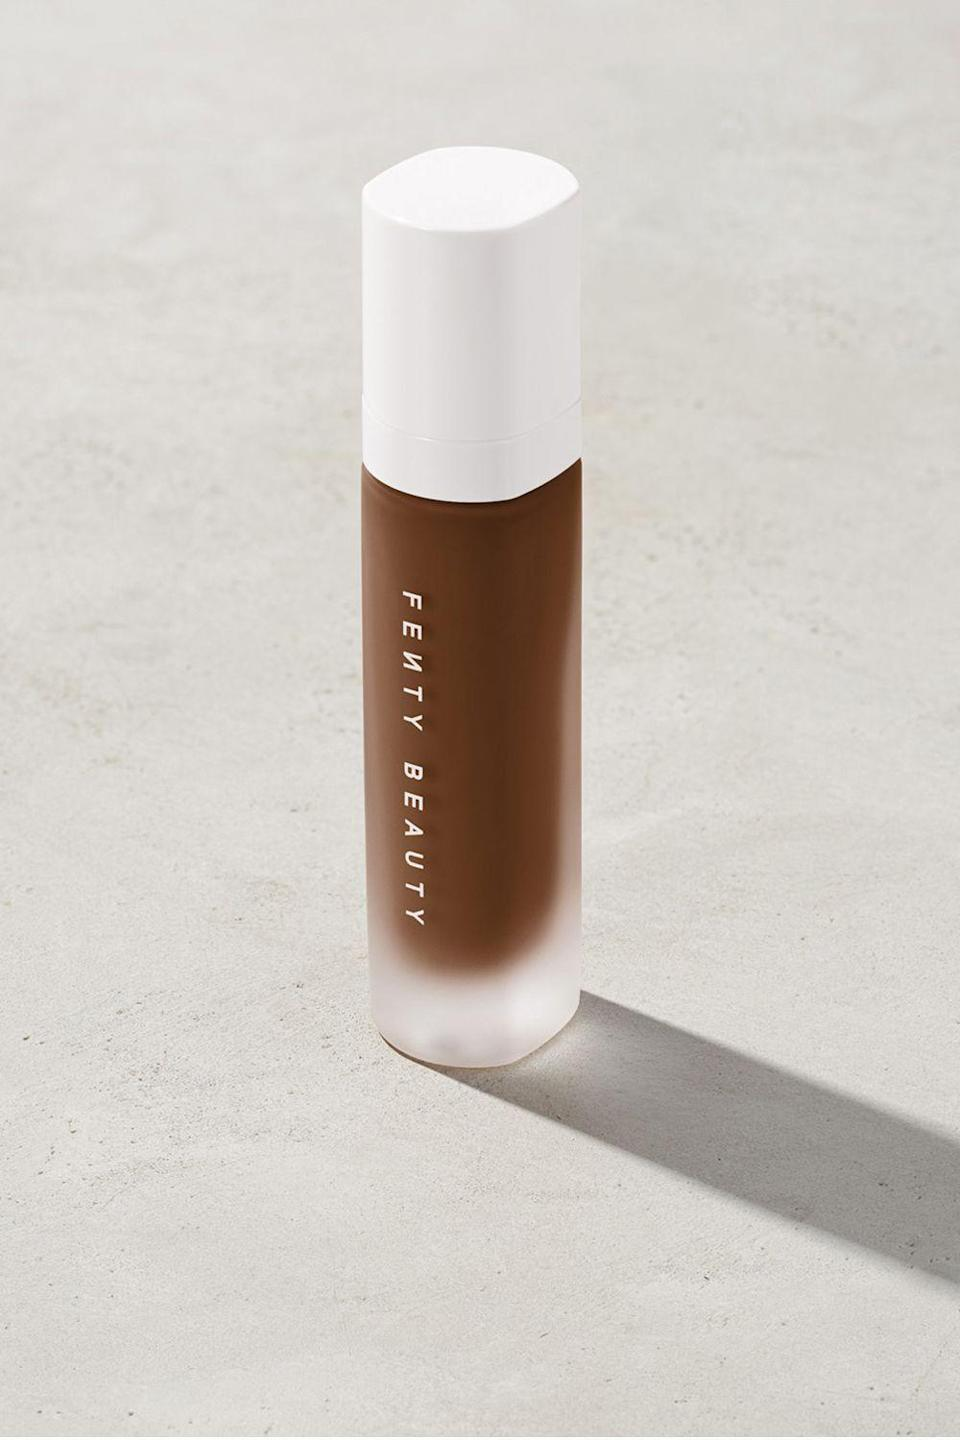 """<p><strong>Fenty Beauty</strong></p><p>fentybeauty.com</p><p><a href=""""https://go.redirectingat.com?id=74968X1596630&url=https%3A%2F%2Fwww.fentybeauty.com%2Fpro-filtr-soft-matte-longwear-foundation%2FFB30006.html&sref=https%3A%2F%2Fwww.cosmopolitan.com%2Fstyle-beauty%2Fbeauty%2Fg34399952%2Ffenty-beauty-sale-october-2020%2F"""" rel=""""nofollow noopener"""" target=""""_blank"""" data-ylk=""""slk:SHOP IT"""" class=""""link rapid-noclick-resp"""">SHOP IT </a></p><p><strong><del>$35</del> $23.62 (33% off)</strong></p><p>Behind every great makeup look (literally) is a reliable foundation. Not only does this bestseller have a silky smooth matte finish, it's also available in a range of shades.</p>"""